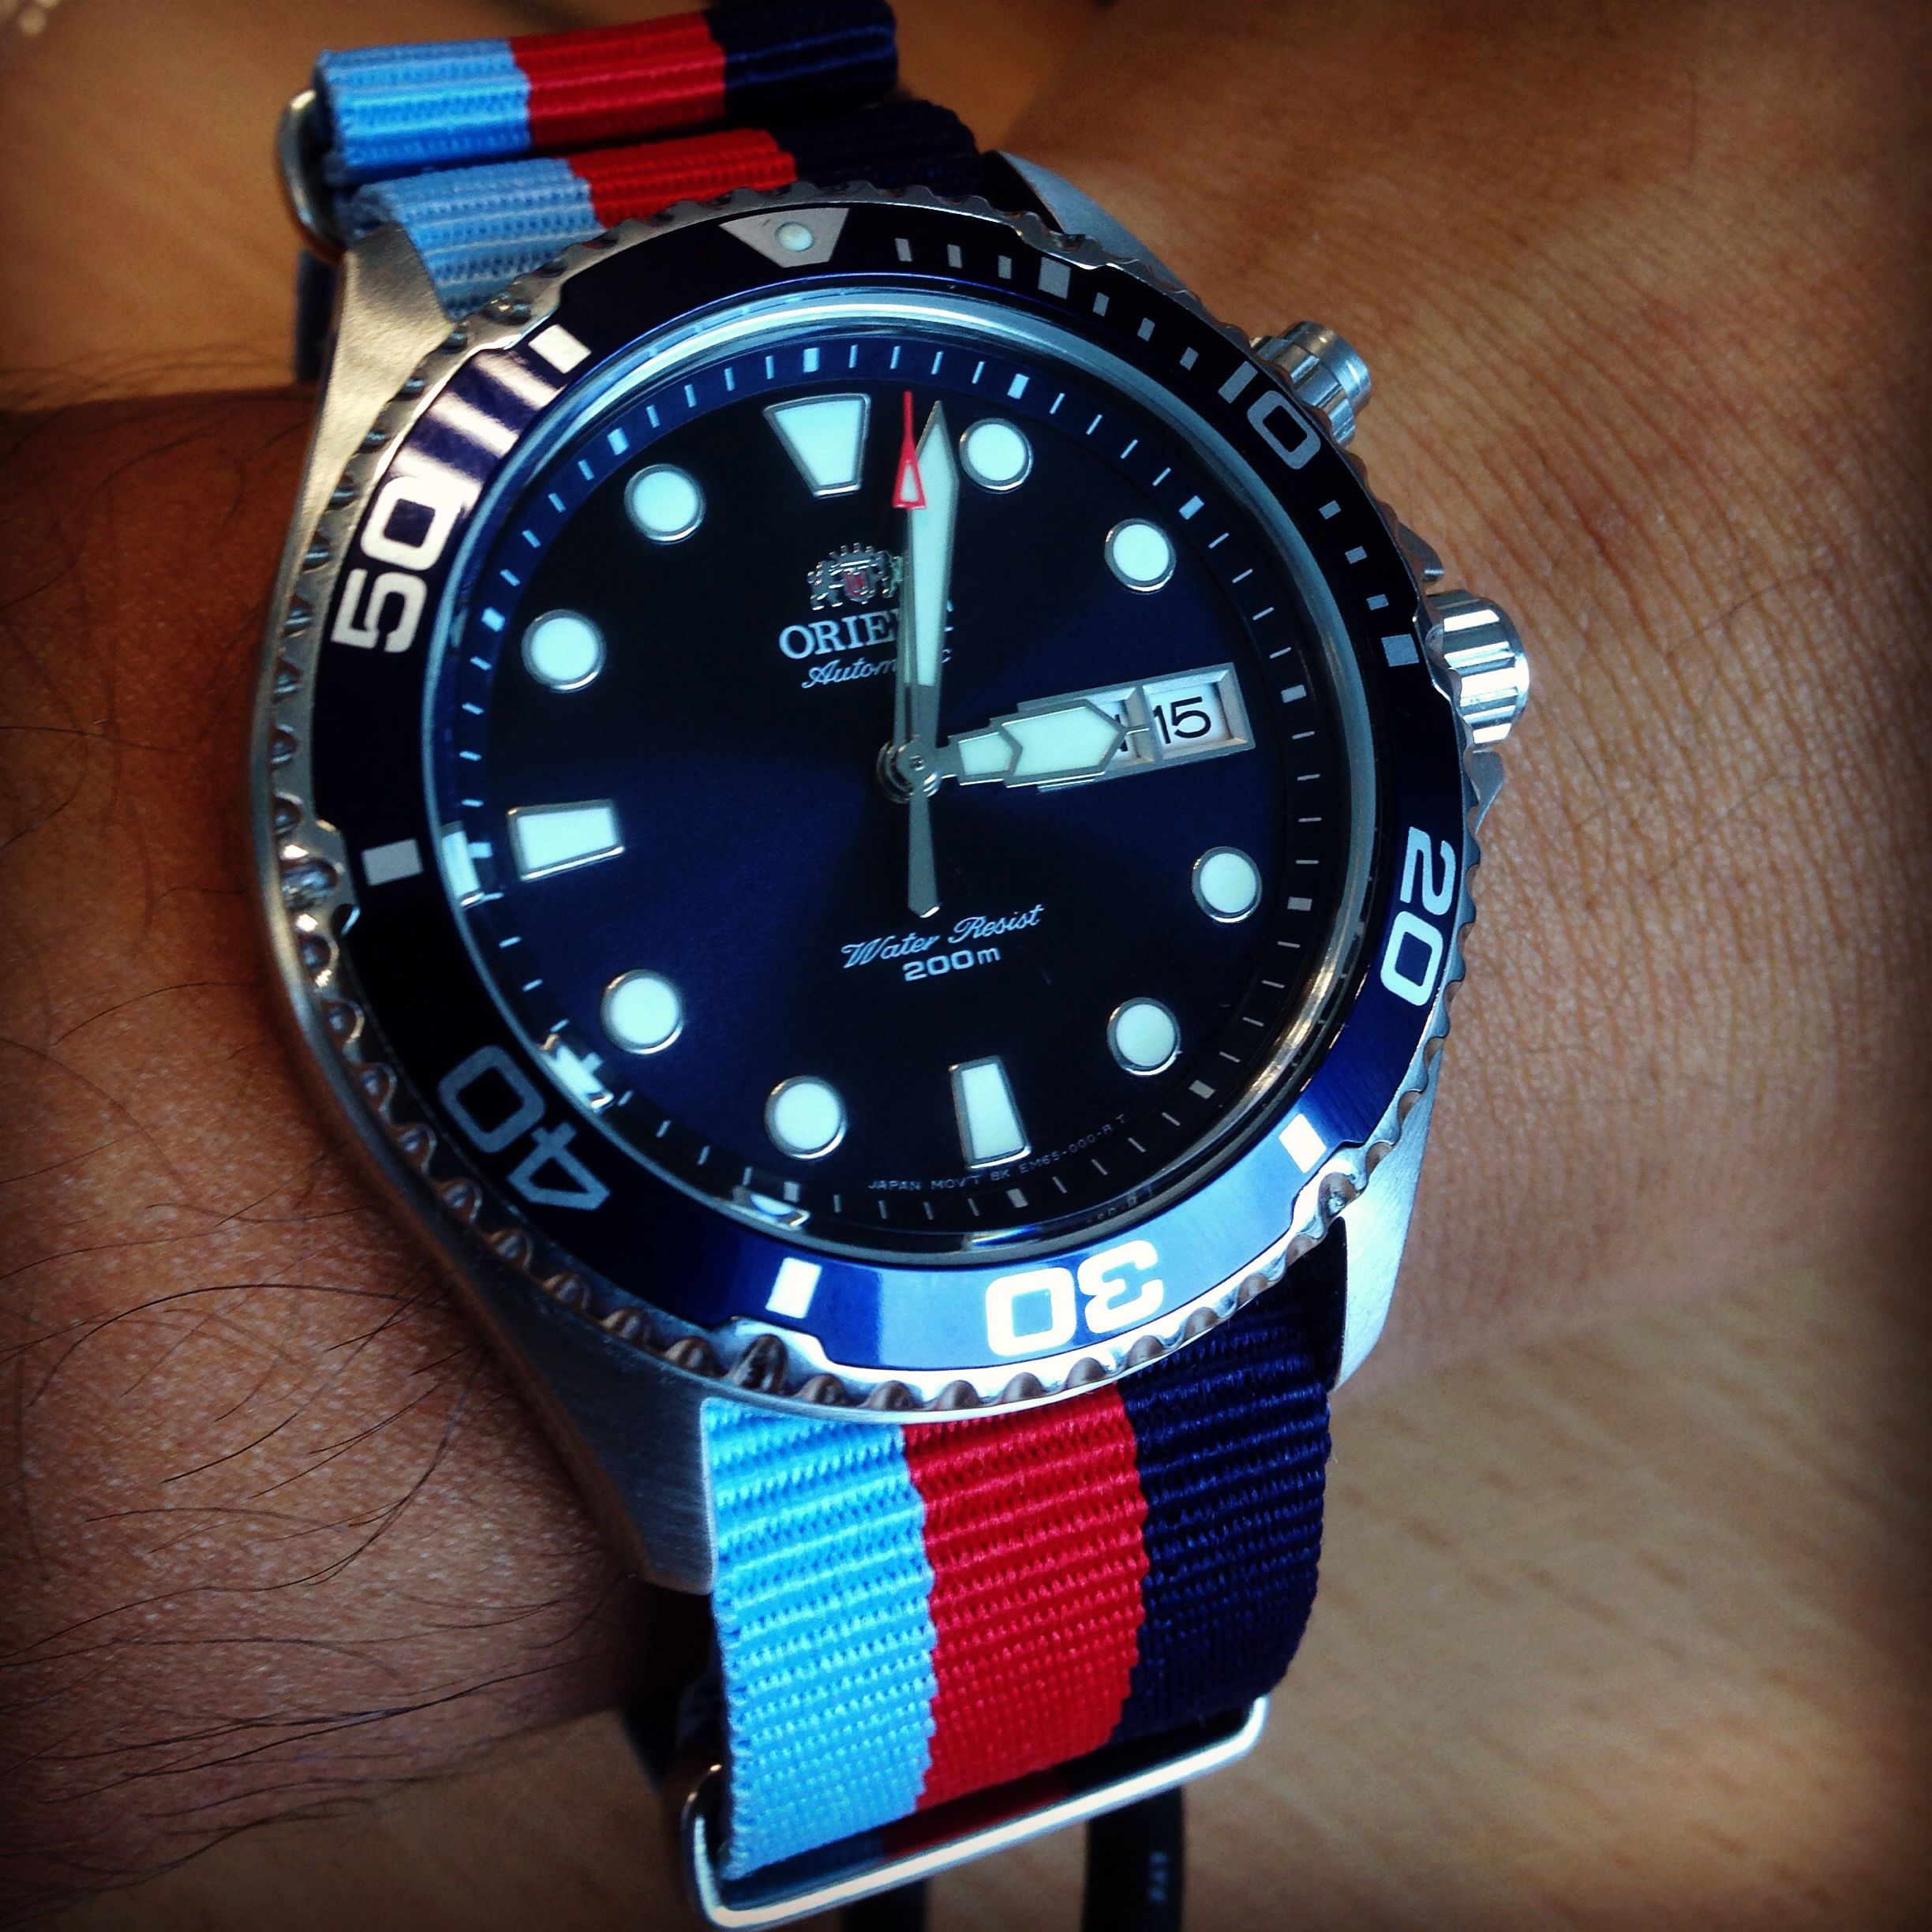 e4d7aae25a Shaking it up a a bit... M3 NATO strap on the Orient Blue Ray. Strap ...